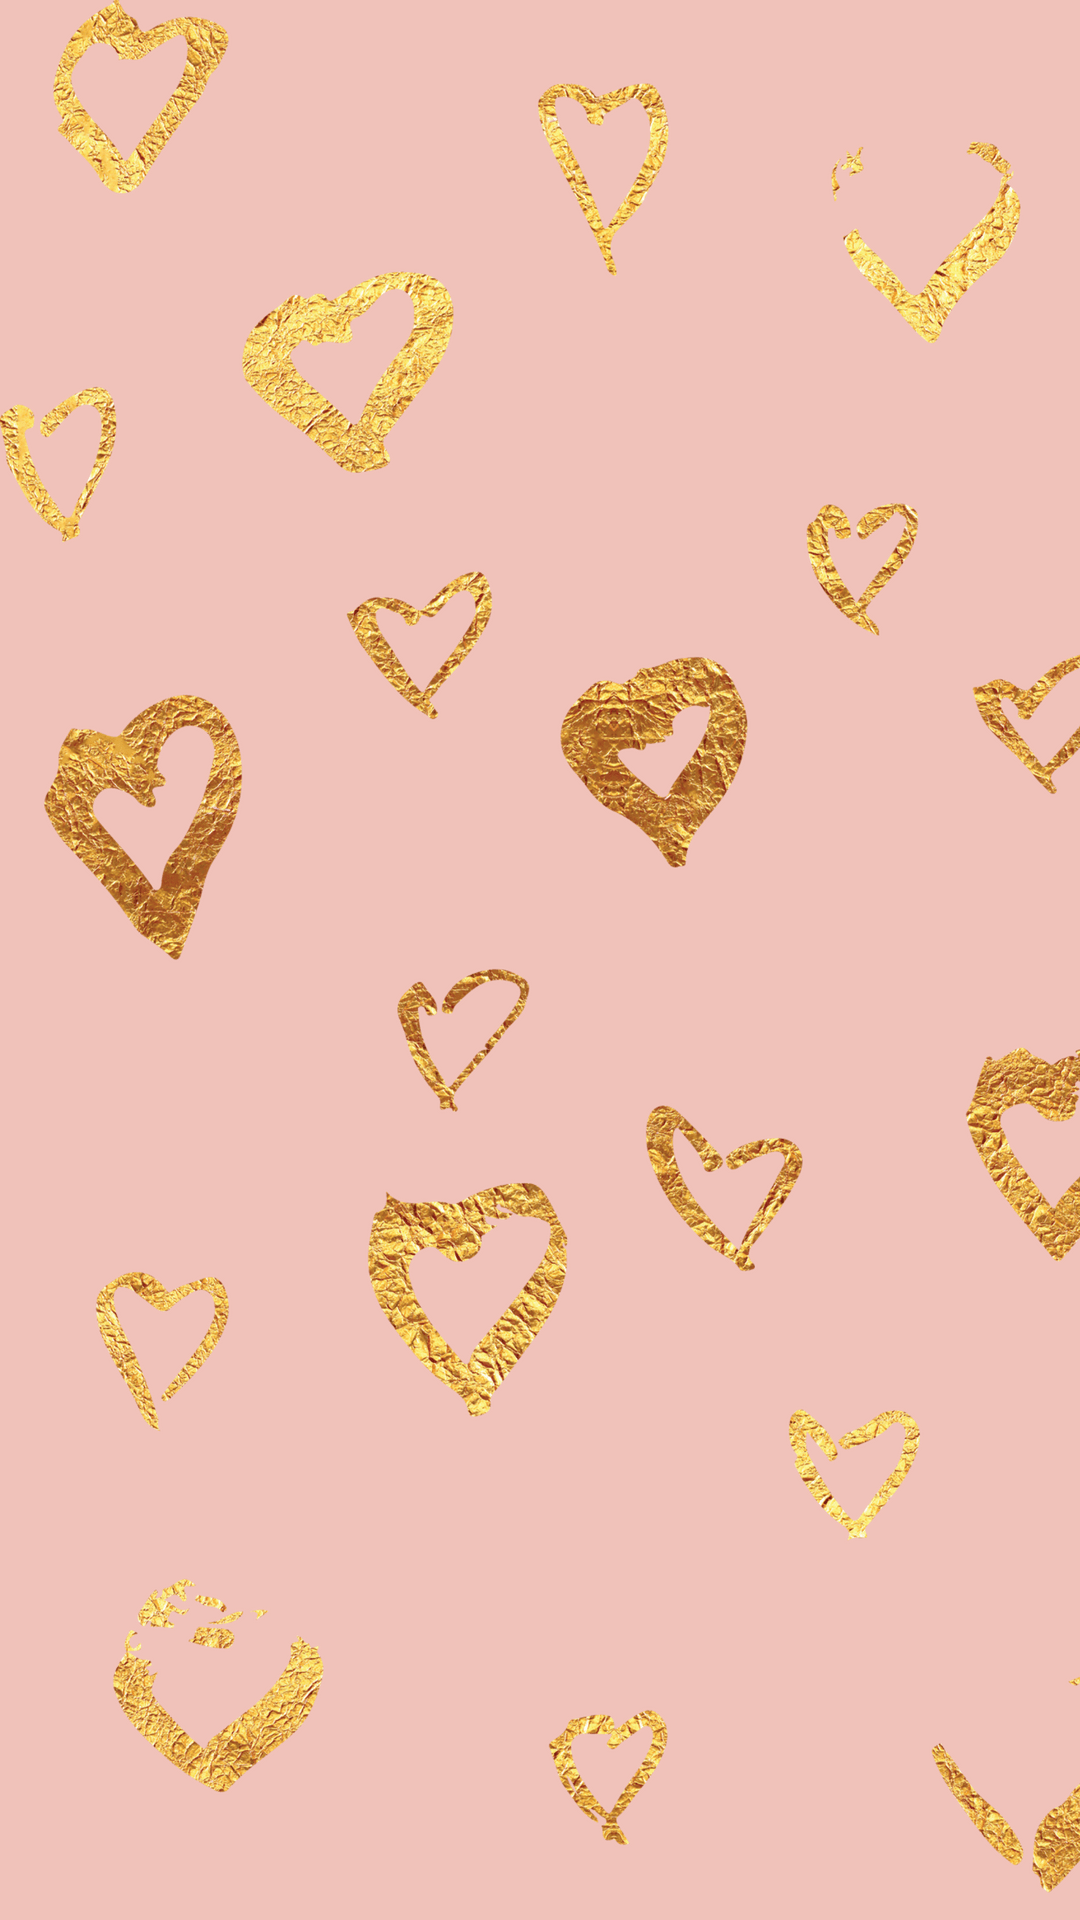 Pink And Gold Bathroom Decor: Pink And Gold Wallpapers